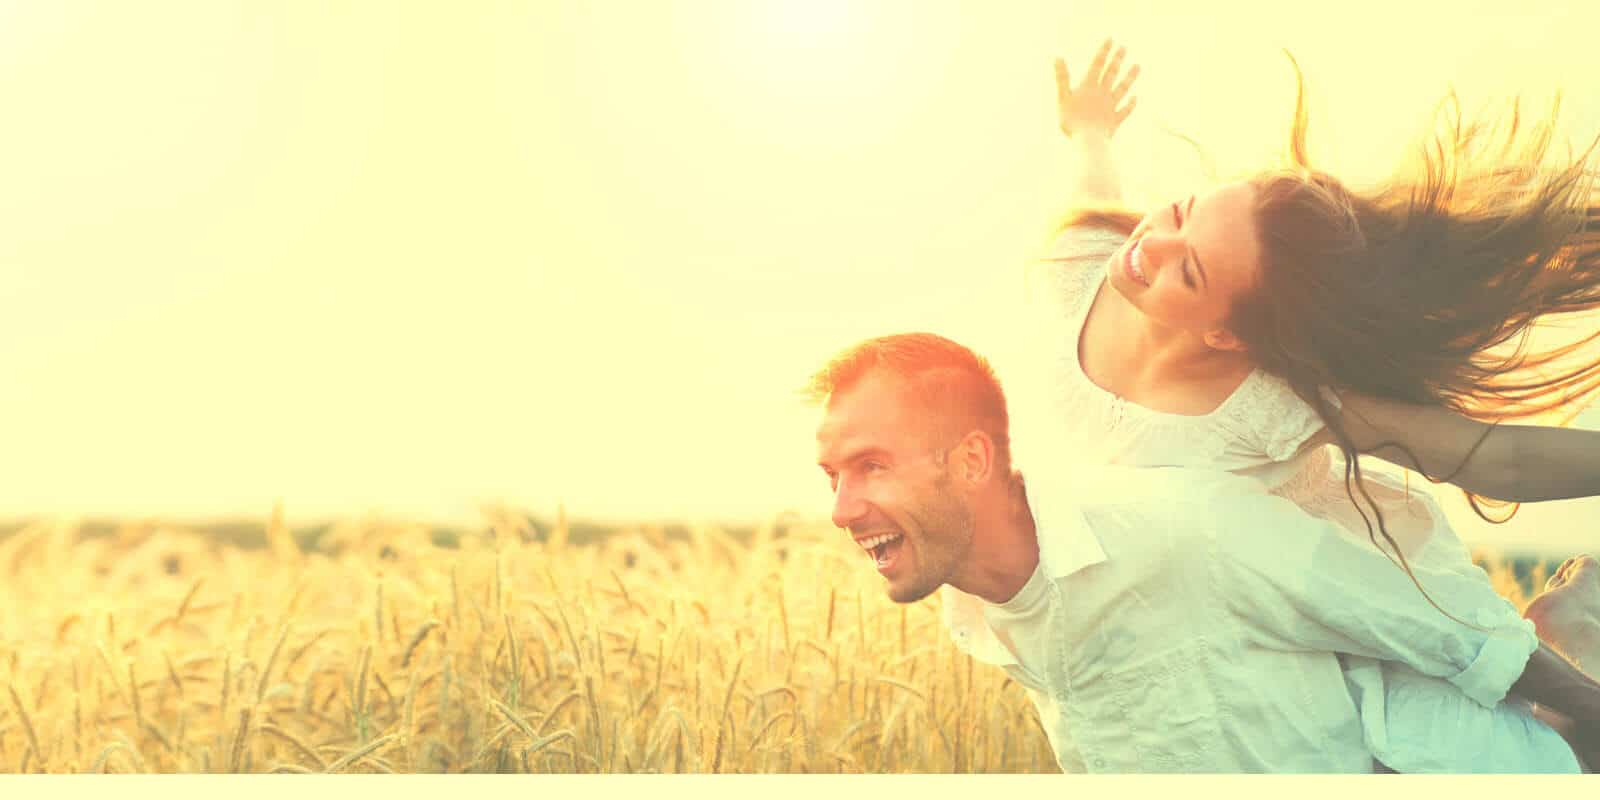 21 Habits Of Happy People